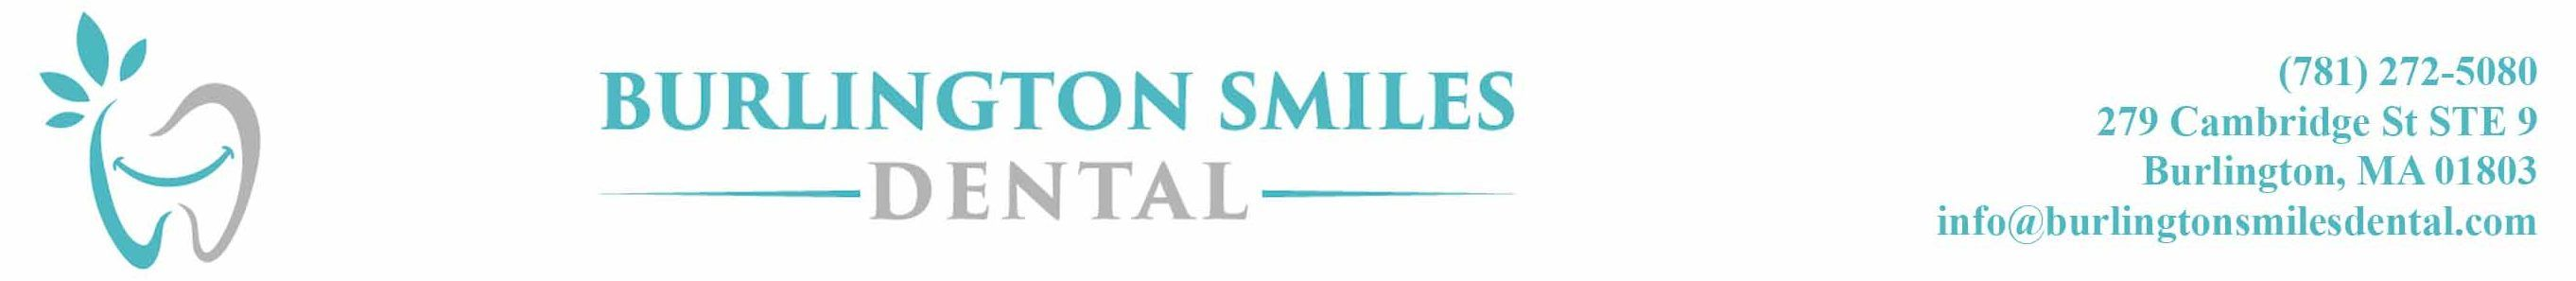 Burlington Smiles Dental